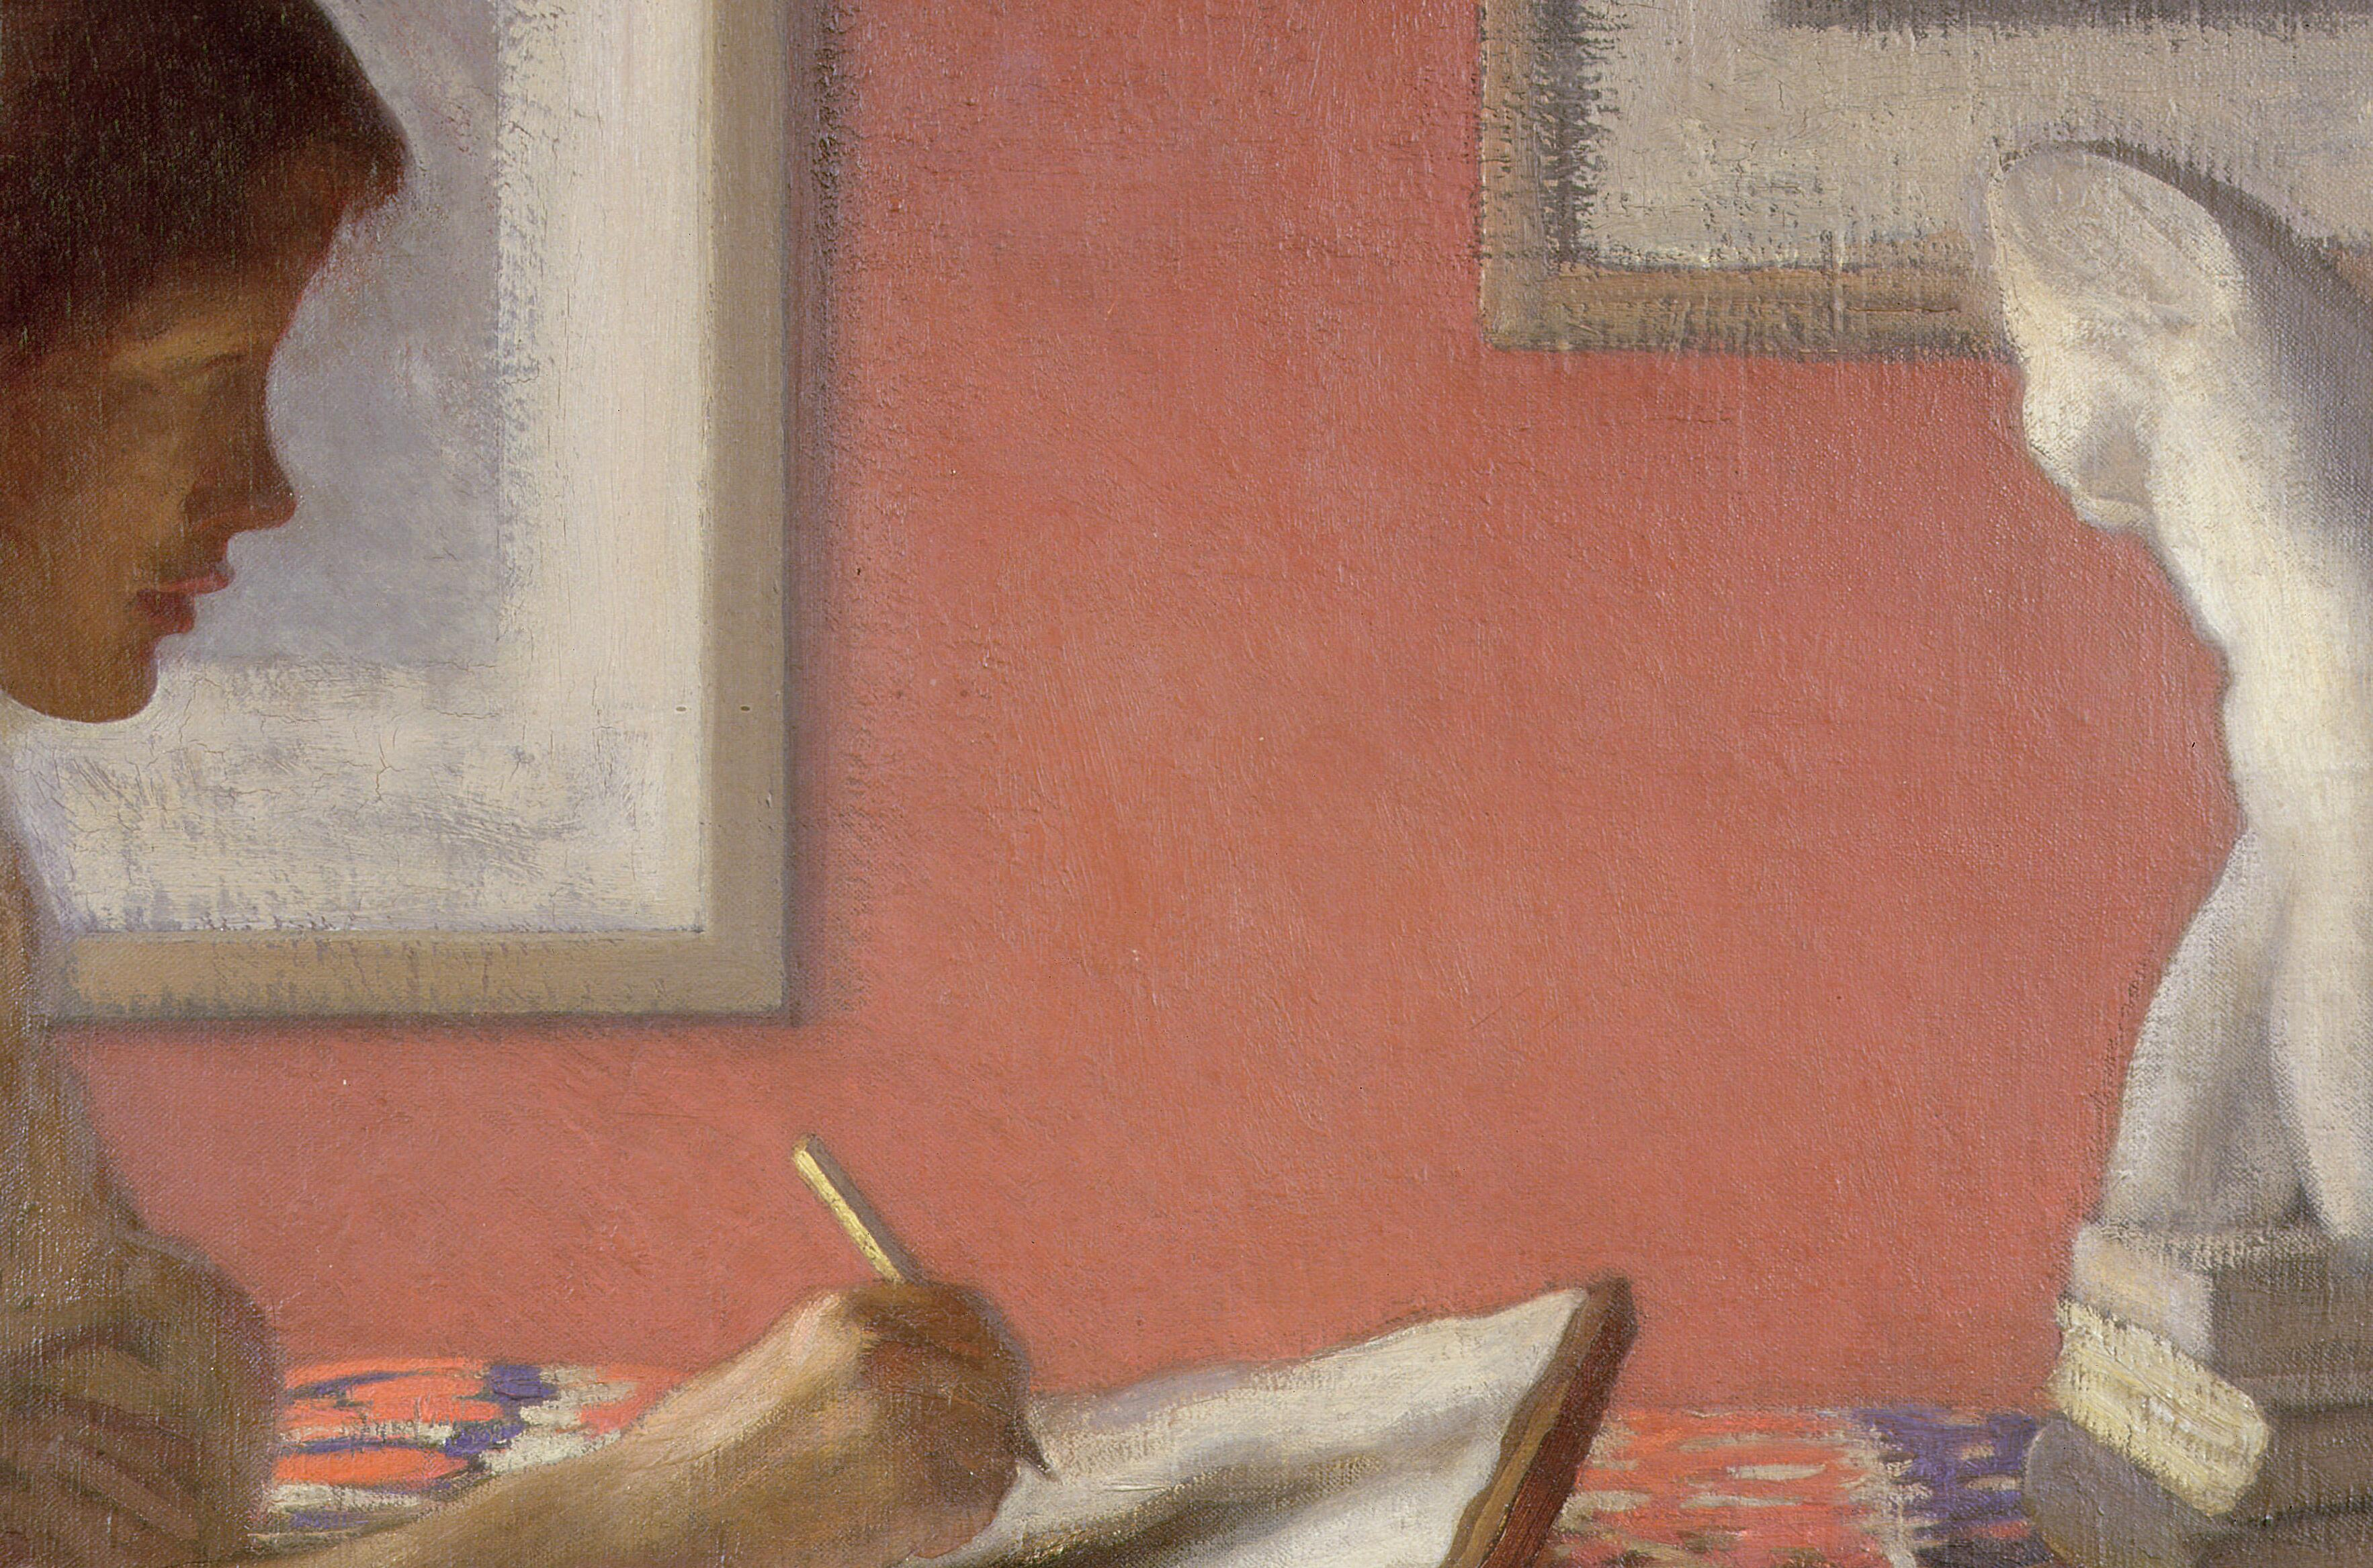 George Clausen, <i>The Student</i>, ca. 1908, oil on canvas, 64.2 x 76.5 cm. Collection of Brighton and Hove Museums and Art Galleries (FA001137). Digital image courtesy of Bridgeman Images (All rights reserved).